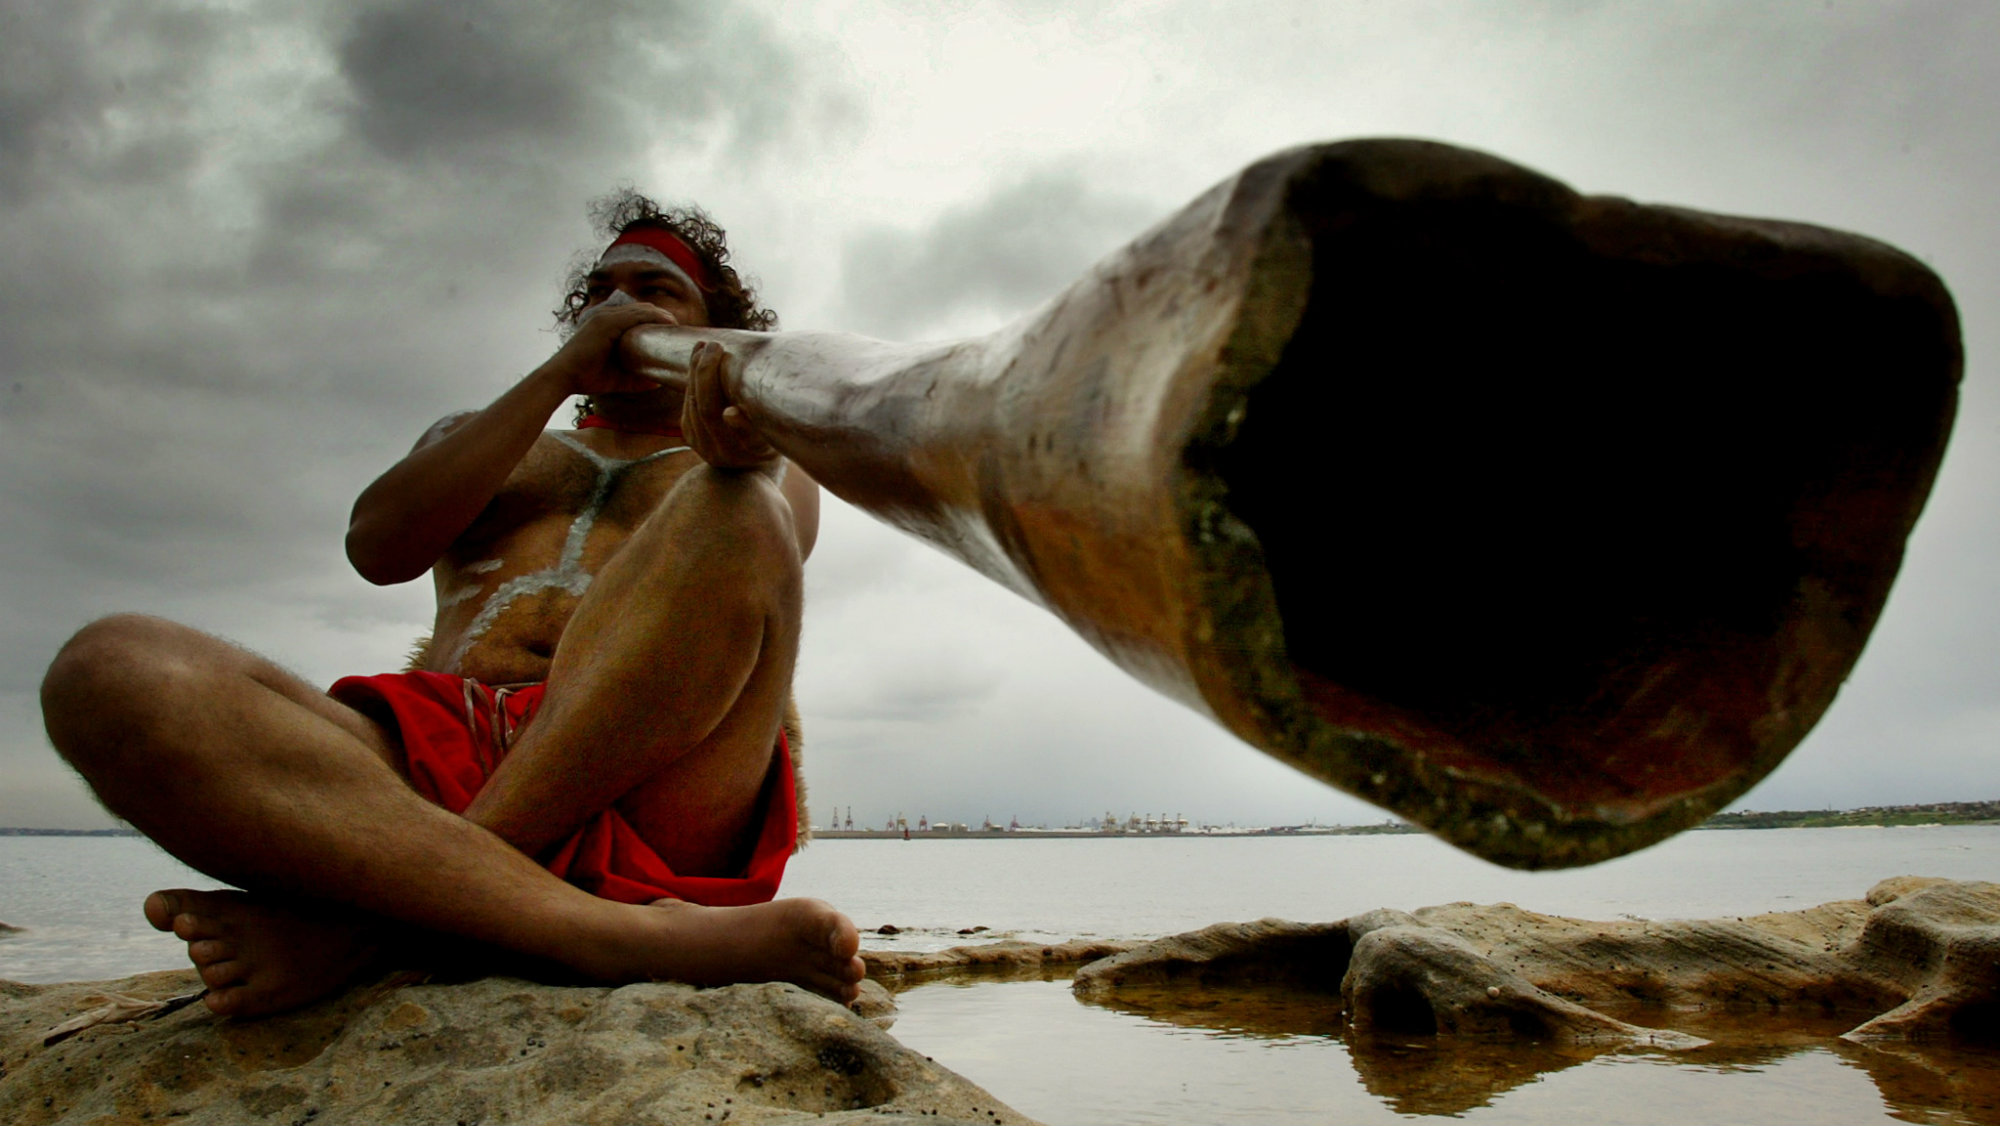 Aboriginal peformer Les Saxby plays a traditional aboriginal musical instrument known as a didgeridoo on the shores of Sydney's Botany Bay April 29, 2002 during the Meeting of Two Cultures ceremony.